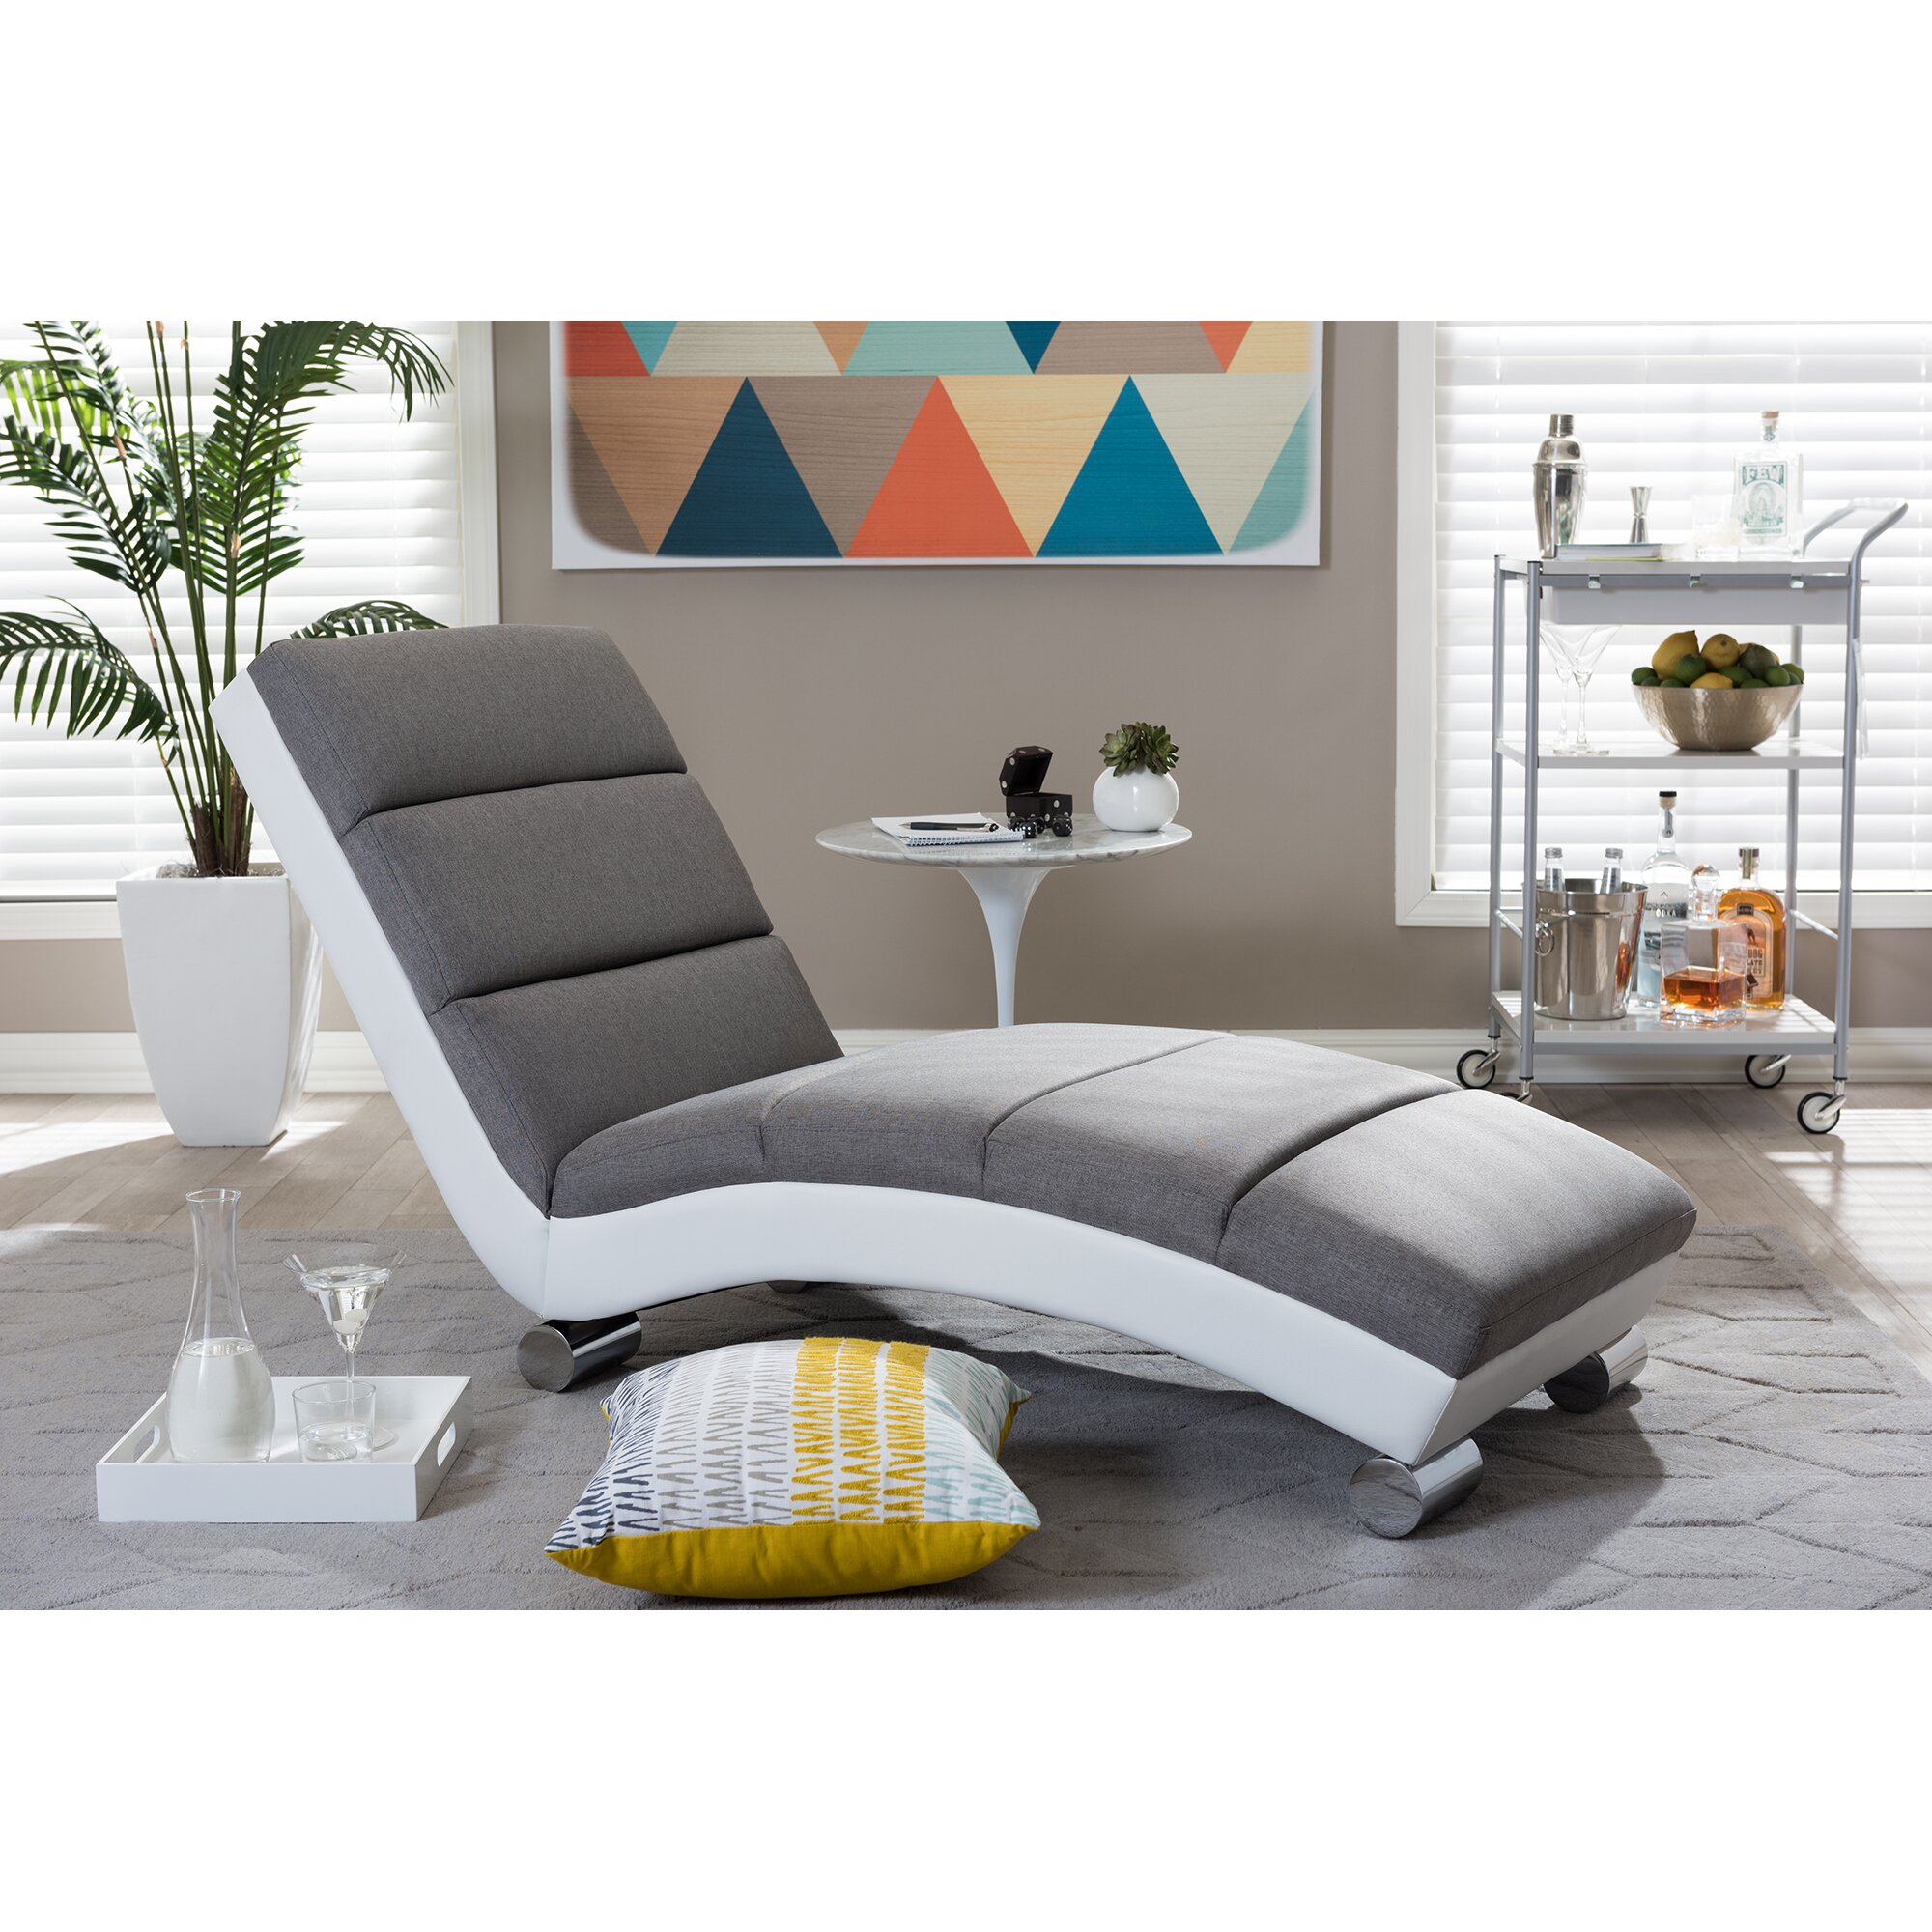 Furniture Living Room Furniture Chaise Lounge Chairs Wholesale